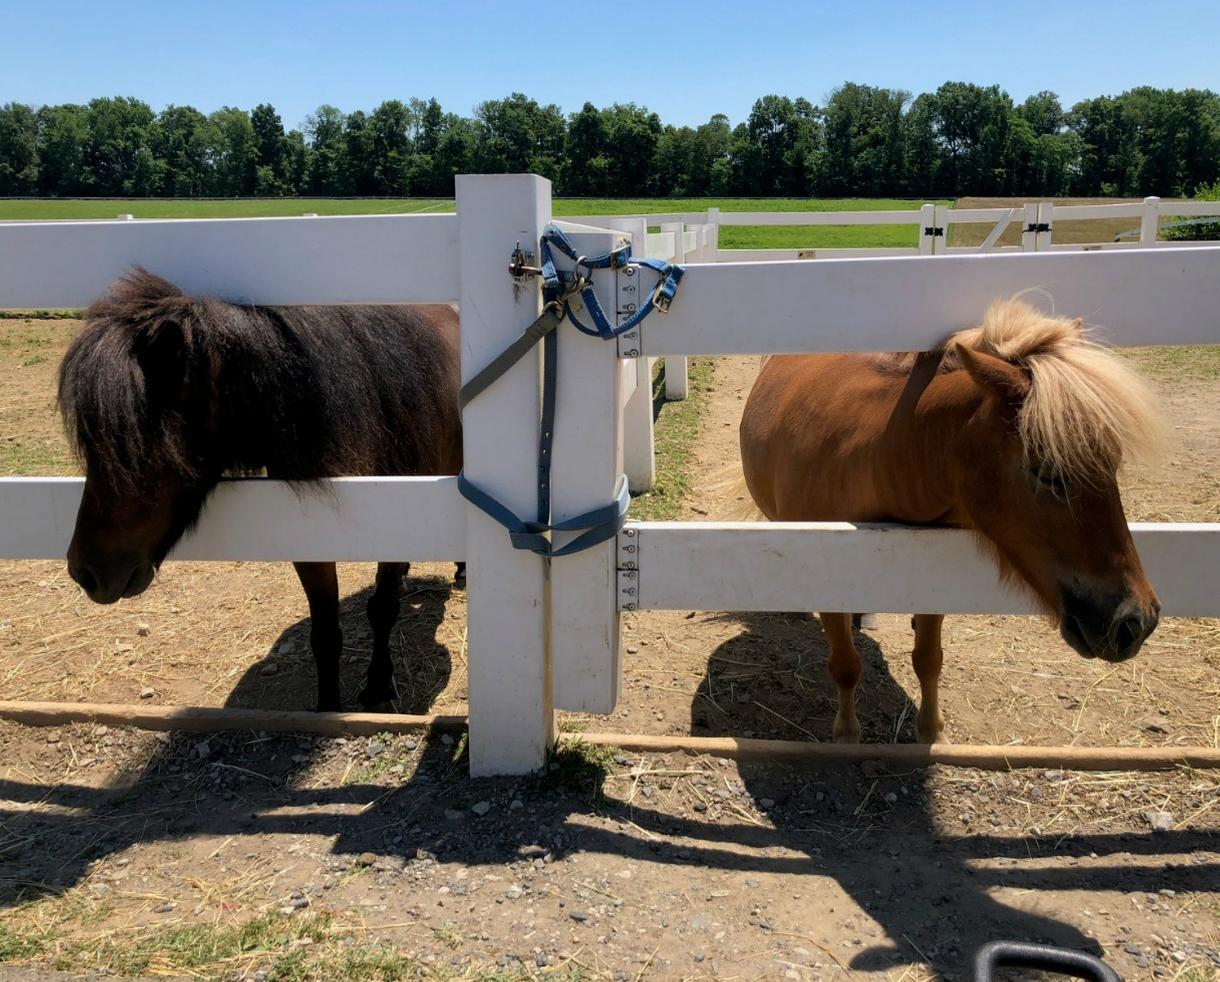 2 Admissions to Land of Little Horses Farm Park